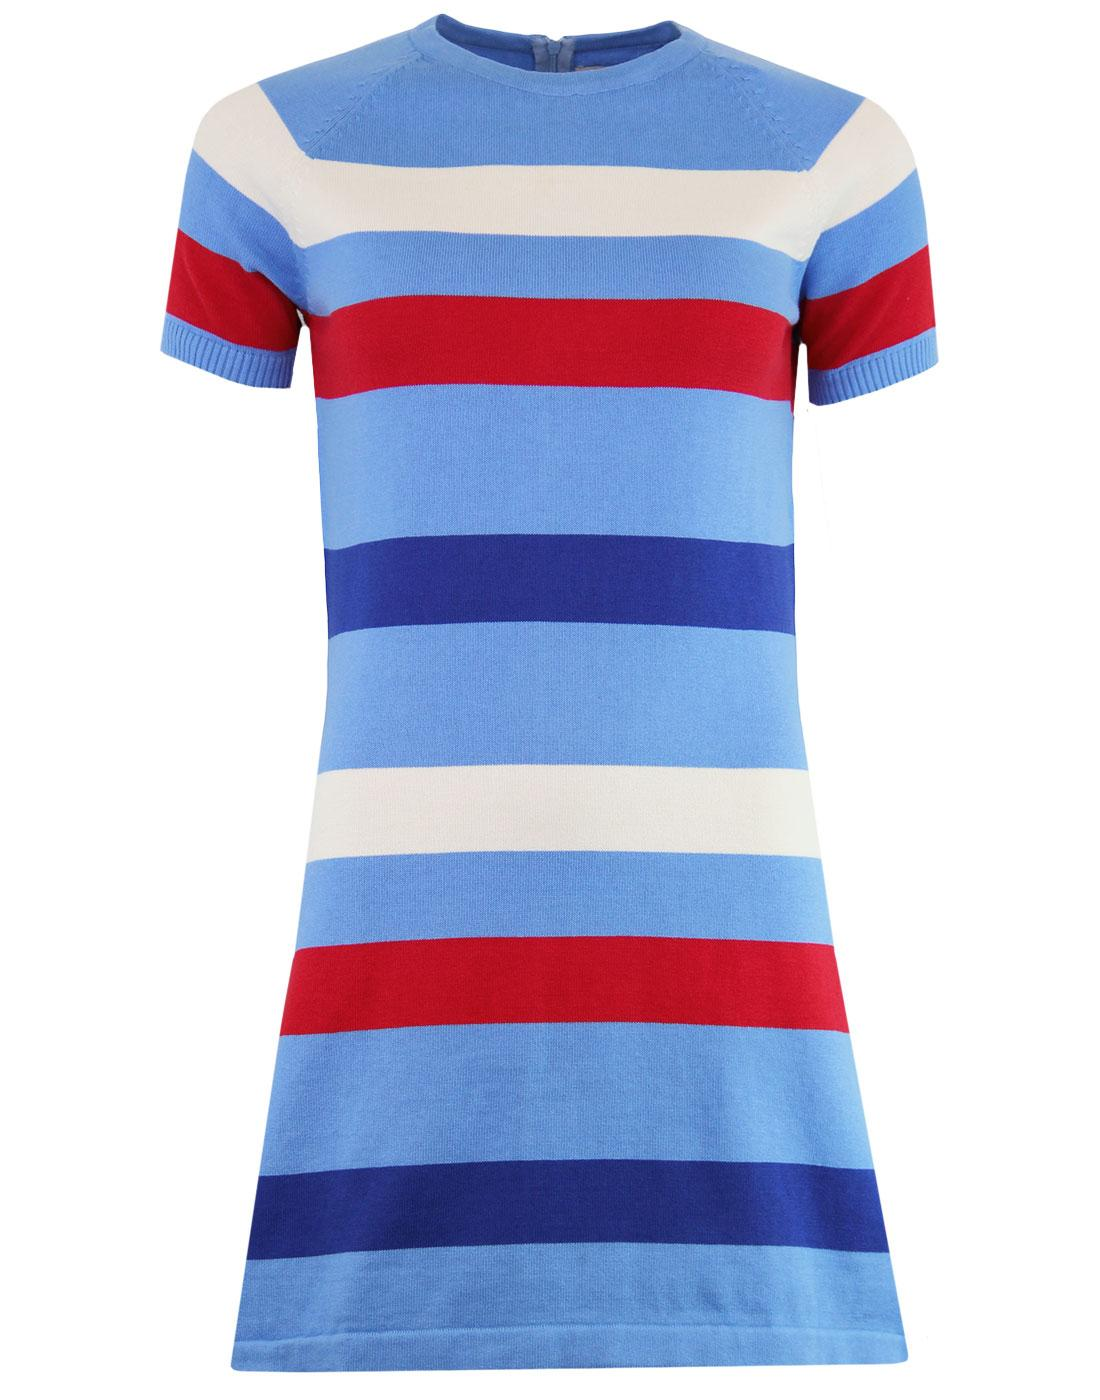 madcap england polly retro 60s mod knit dress surf